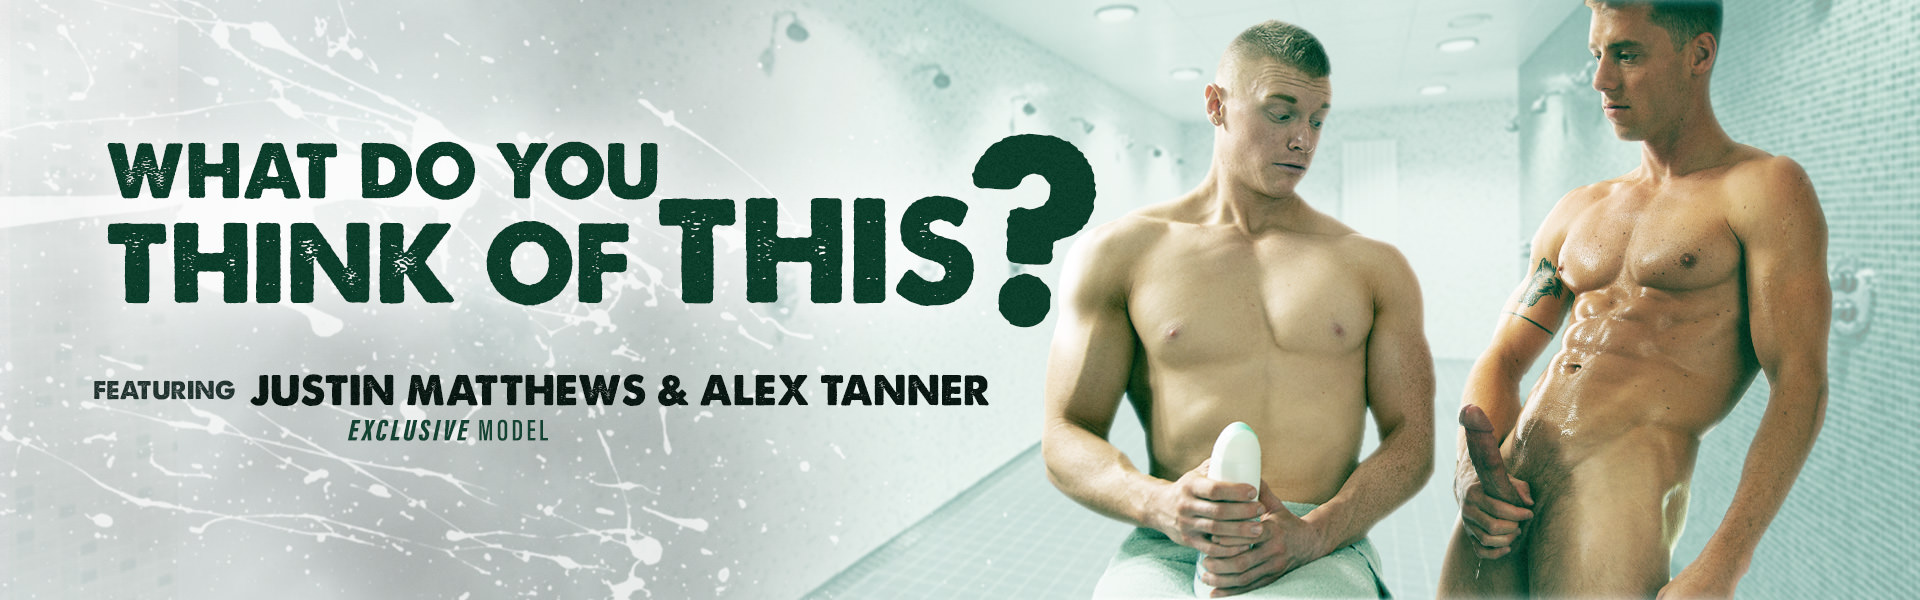 What Do You Think Of This? Featuring Alex Tanner and Justin Matthews